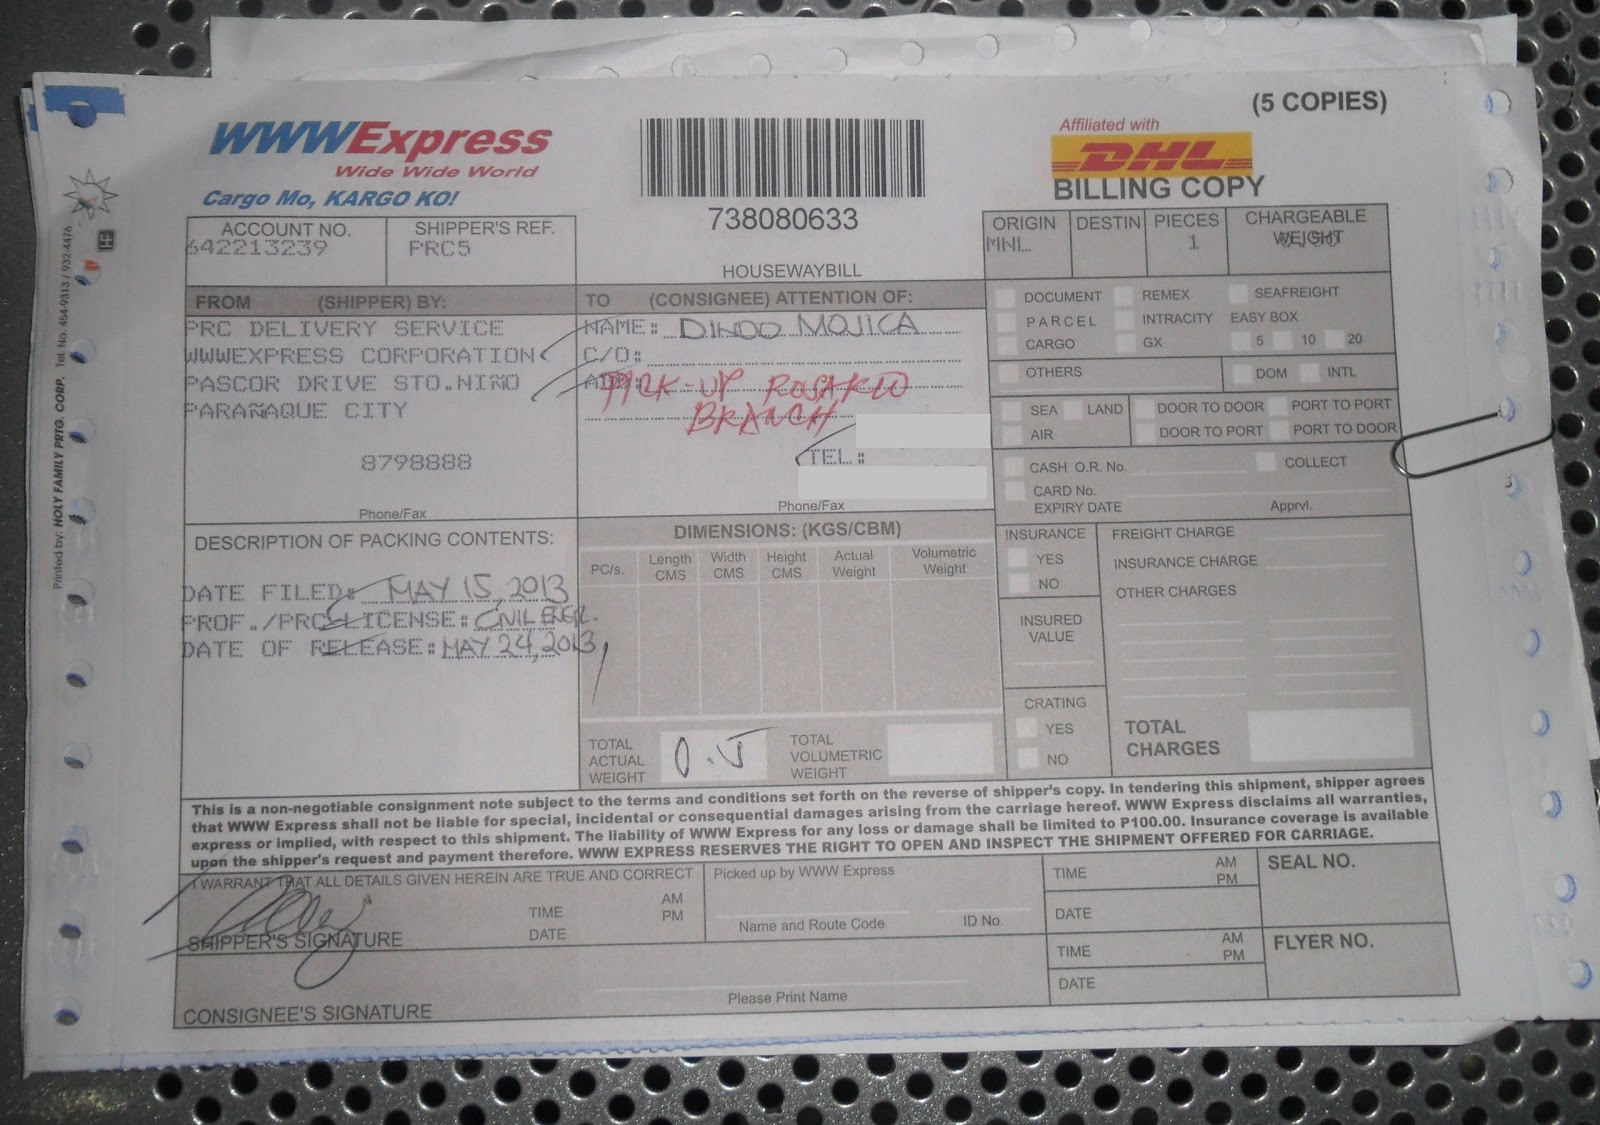 Dhl air express airway bill instructions - The Courier Form Billing Copy Initial Filling Up Their Forms